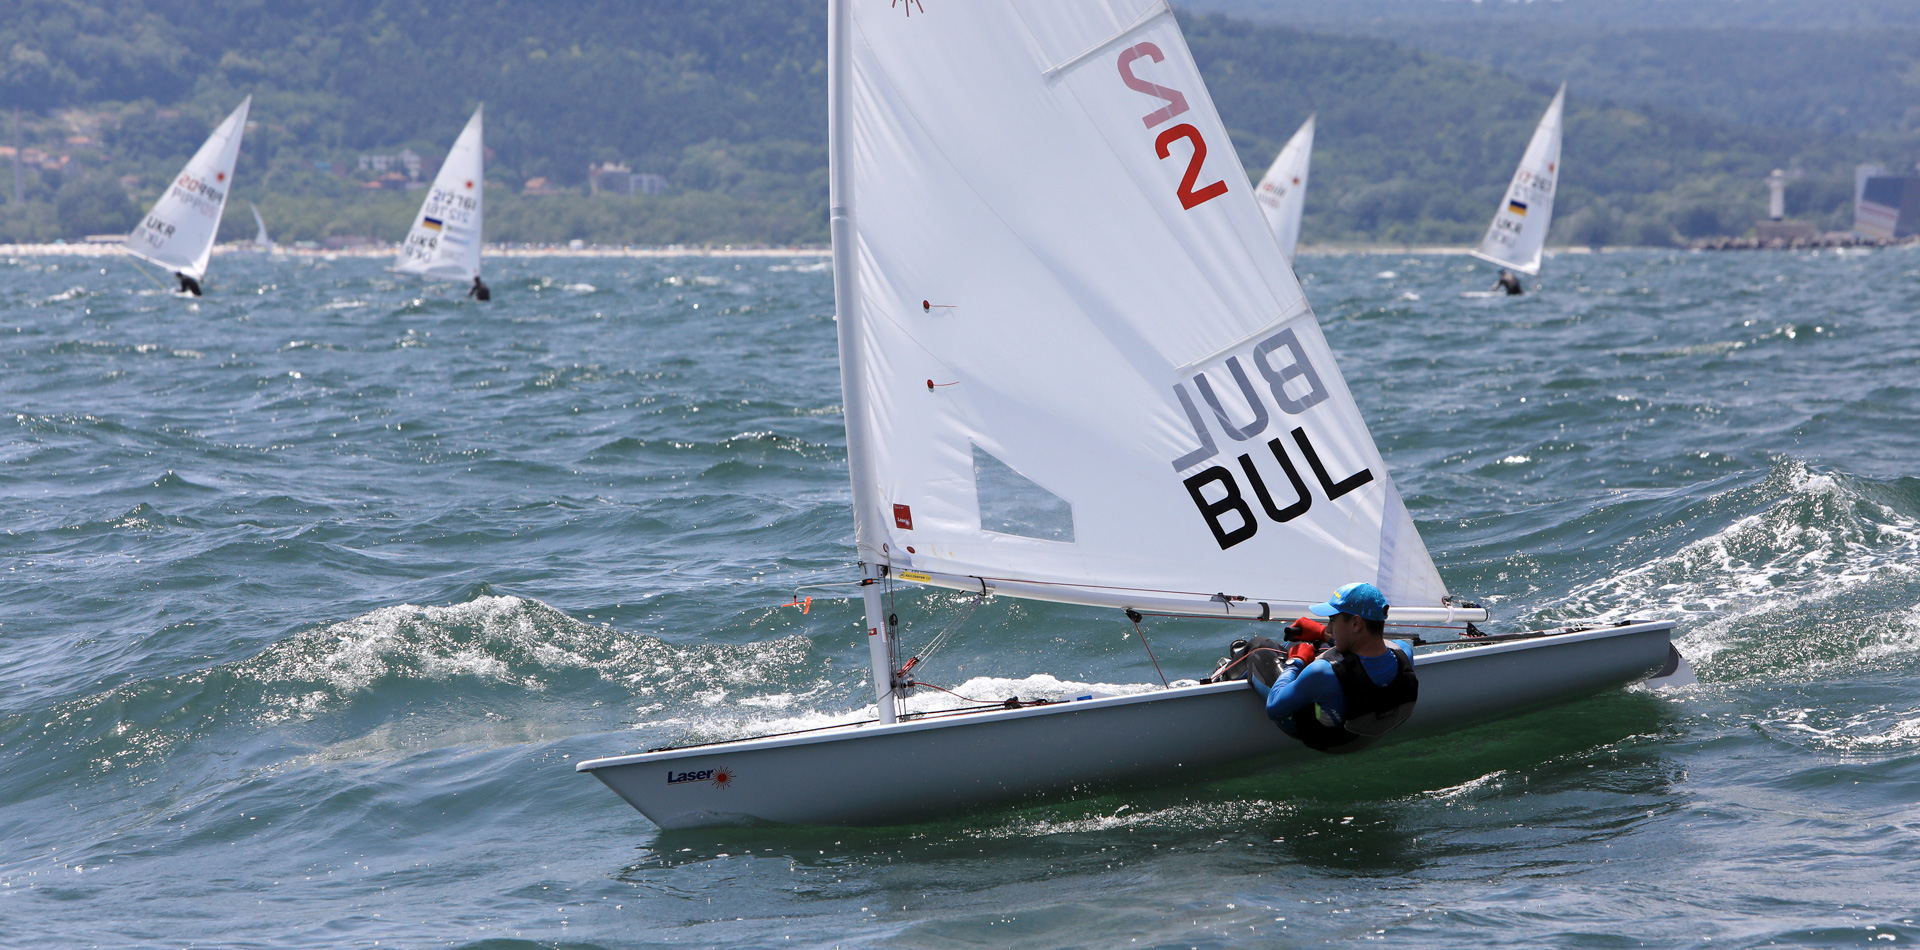 2018 Laser Europa Cup BUL Final results